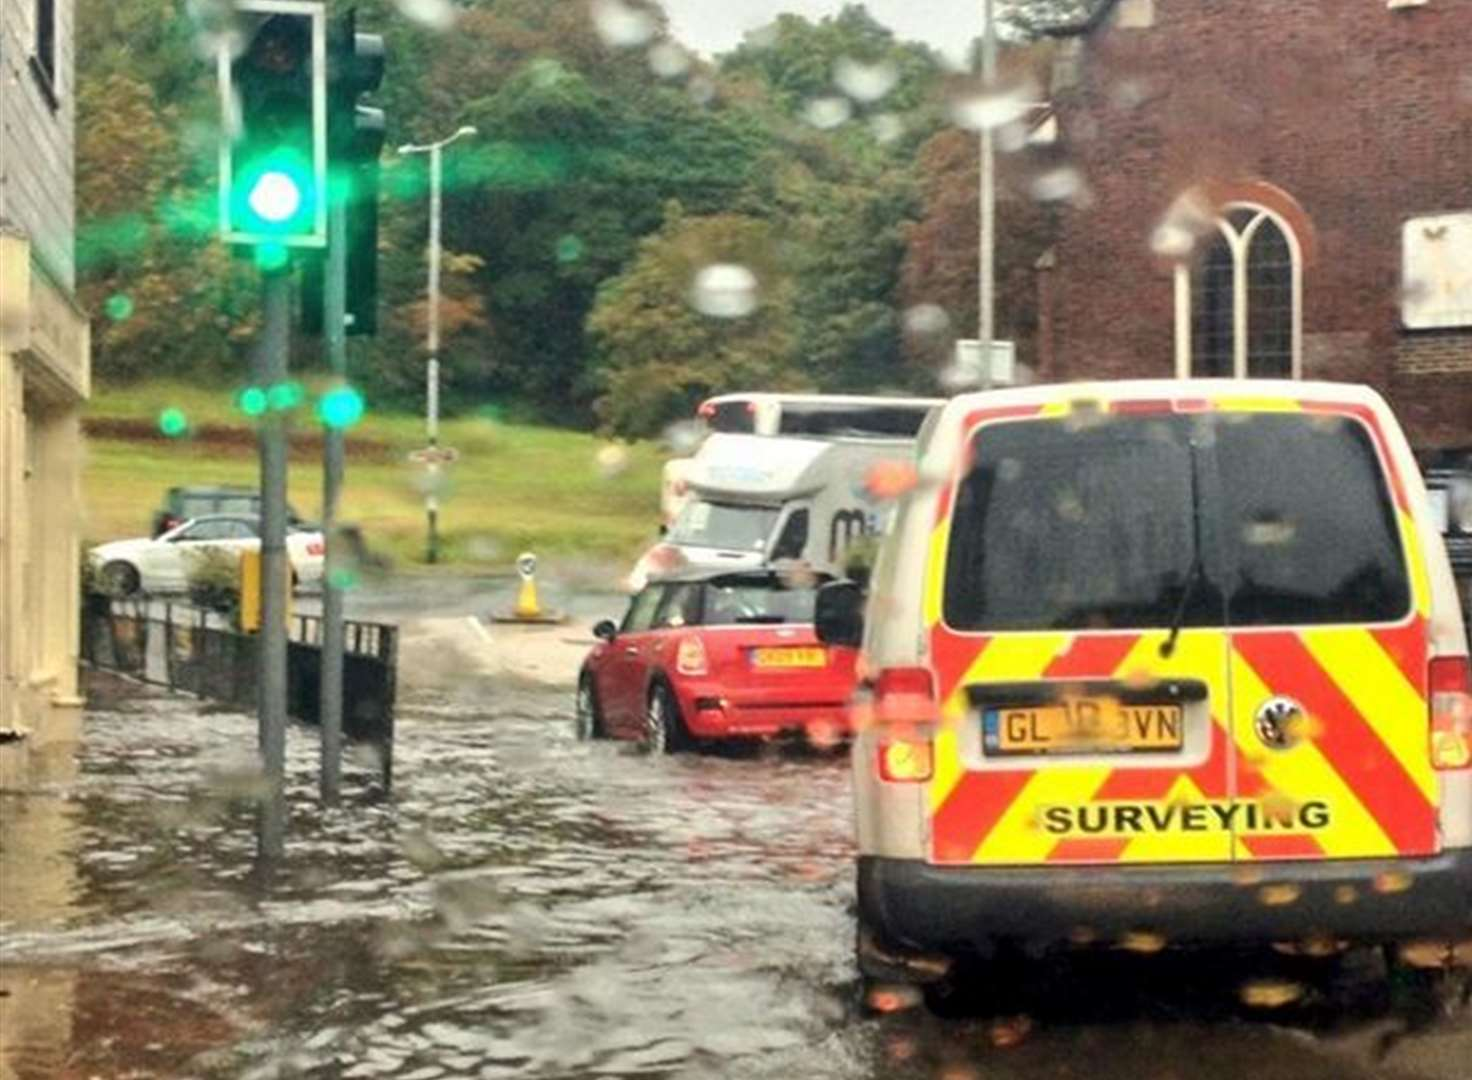 Driving conditions affected as rain lashes Kent